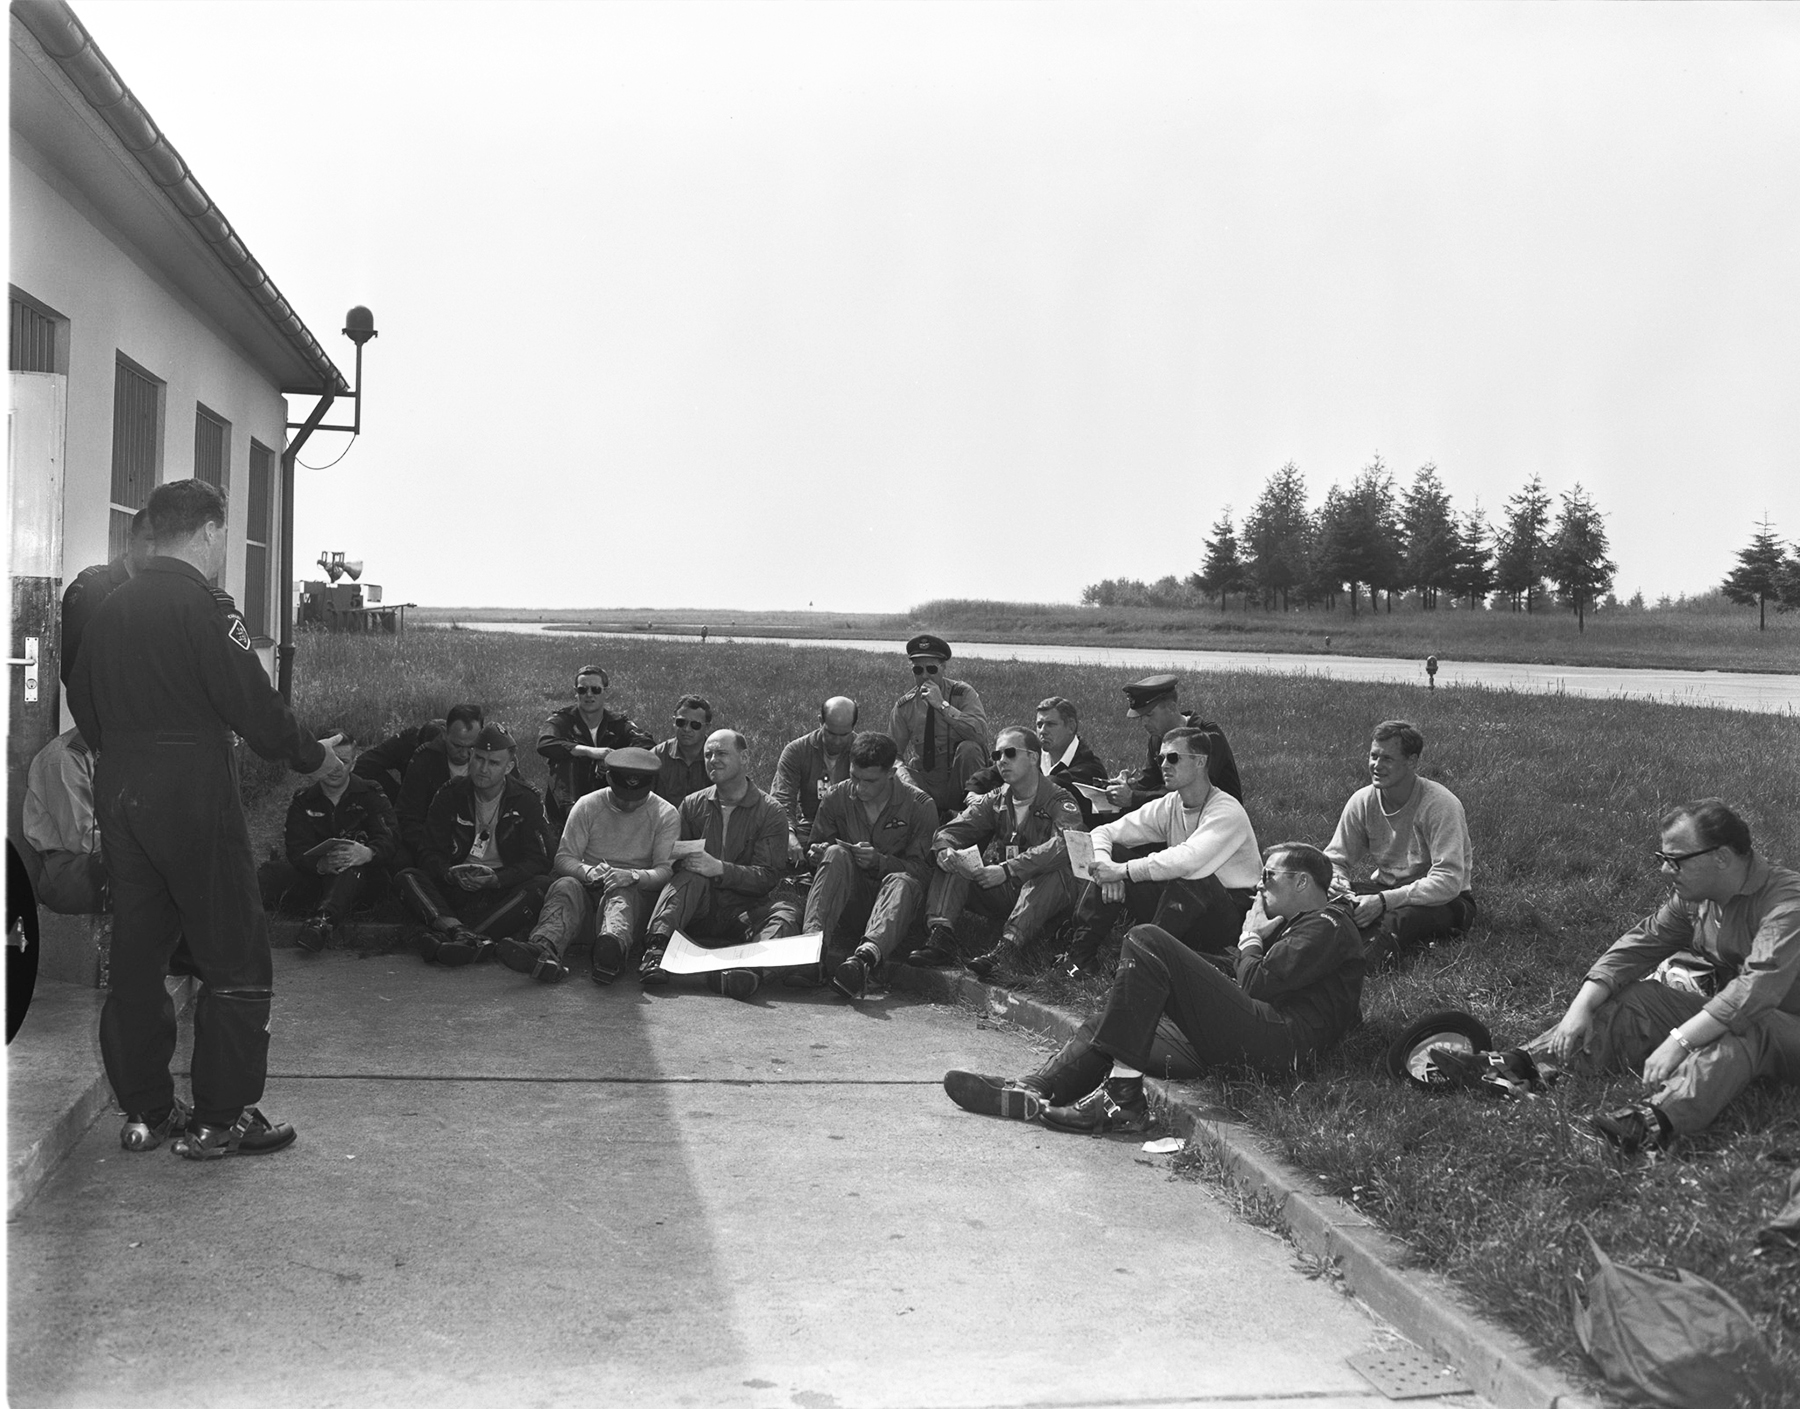 Lieutenant-Colonel R.E. Carruthers briefs 427 Squadron members on June 16, 1969, at an unidentified location. PHOTO: DND Archives, ZW69-171-9